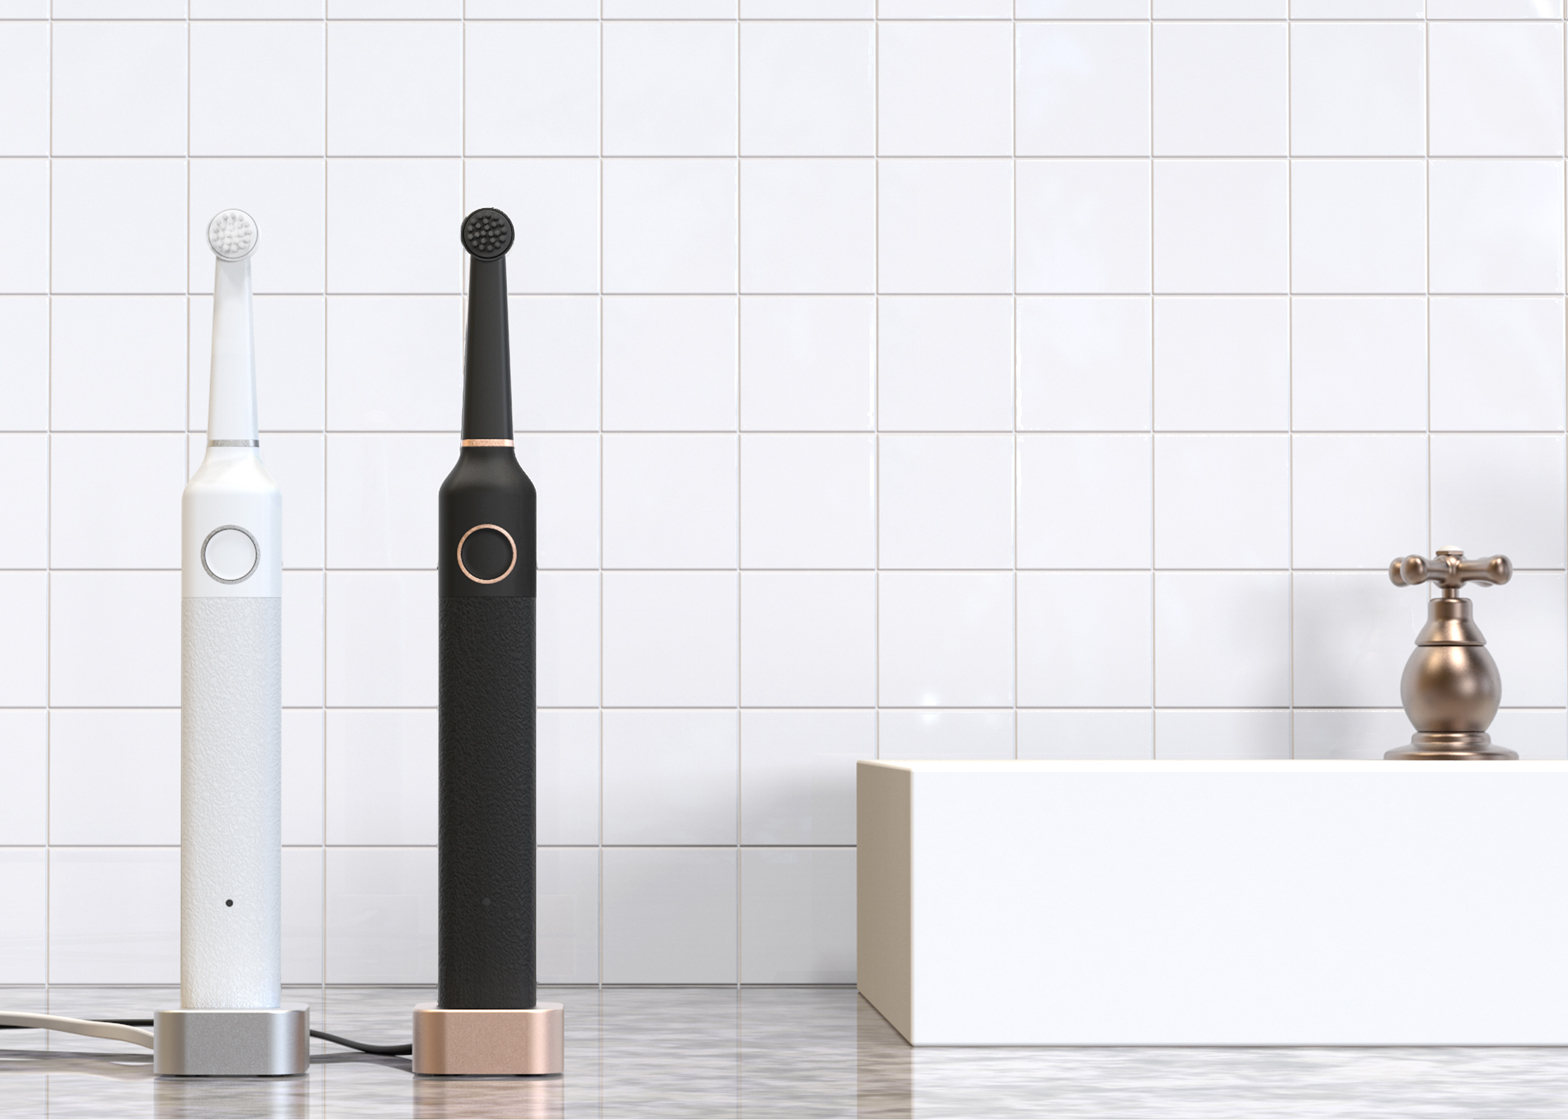 Electric toothbrush by Bruzzoni